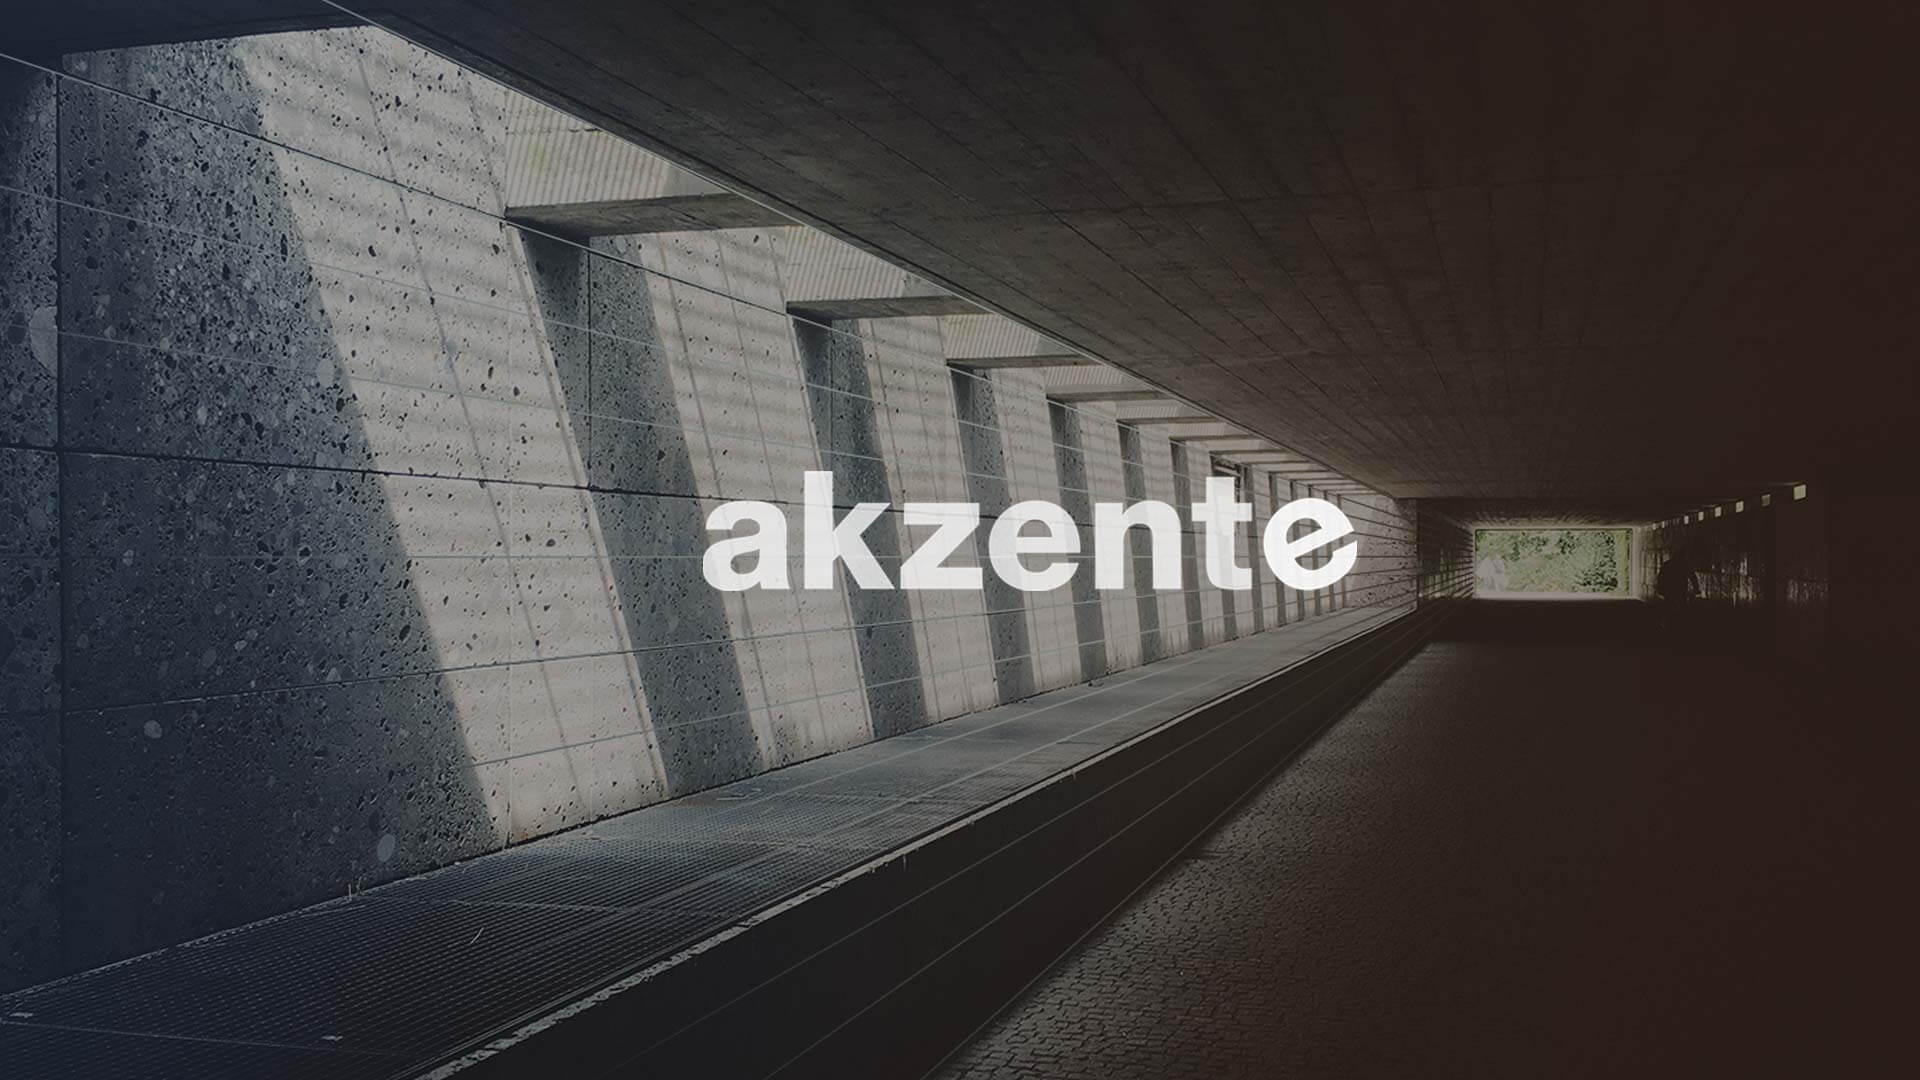 akzente Logo on a Photo of a Tunnel